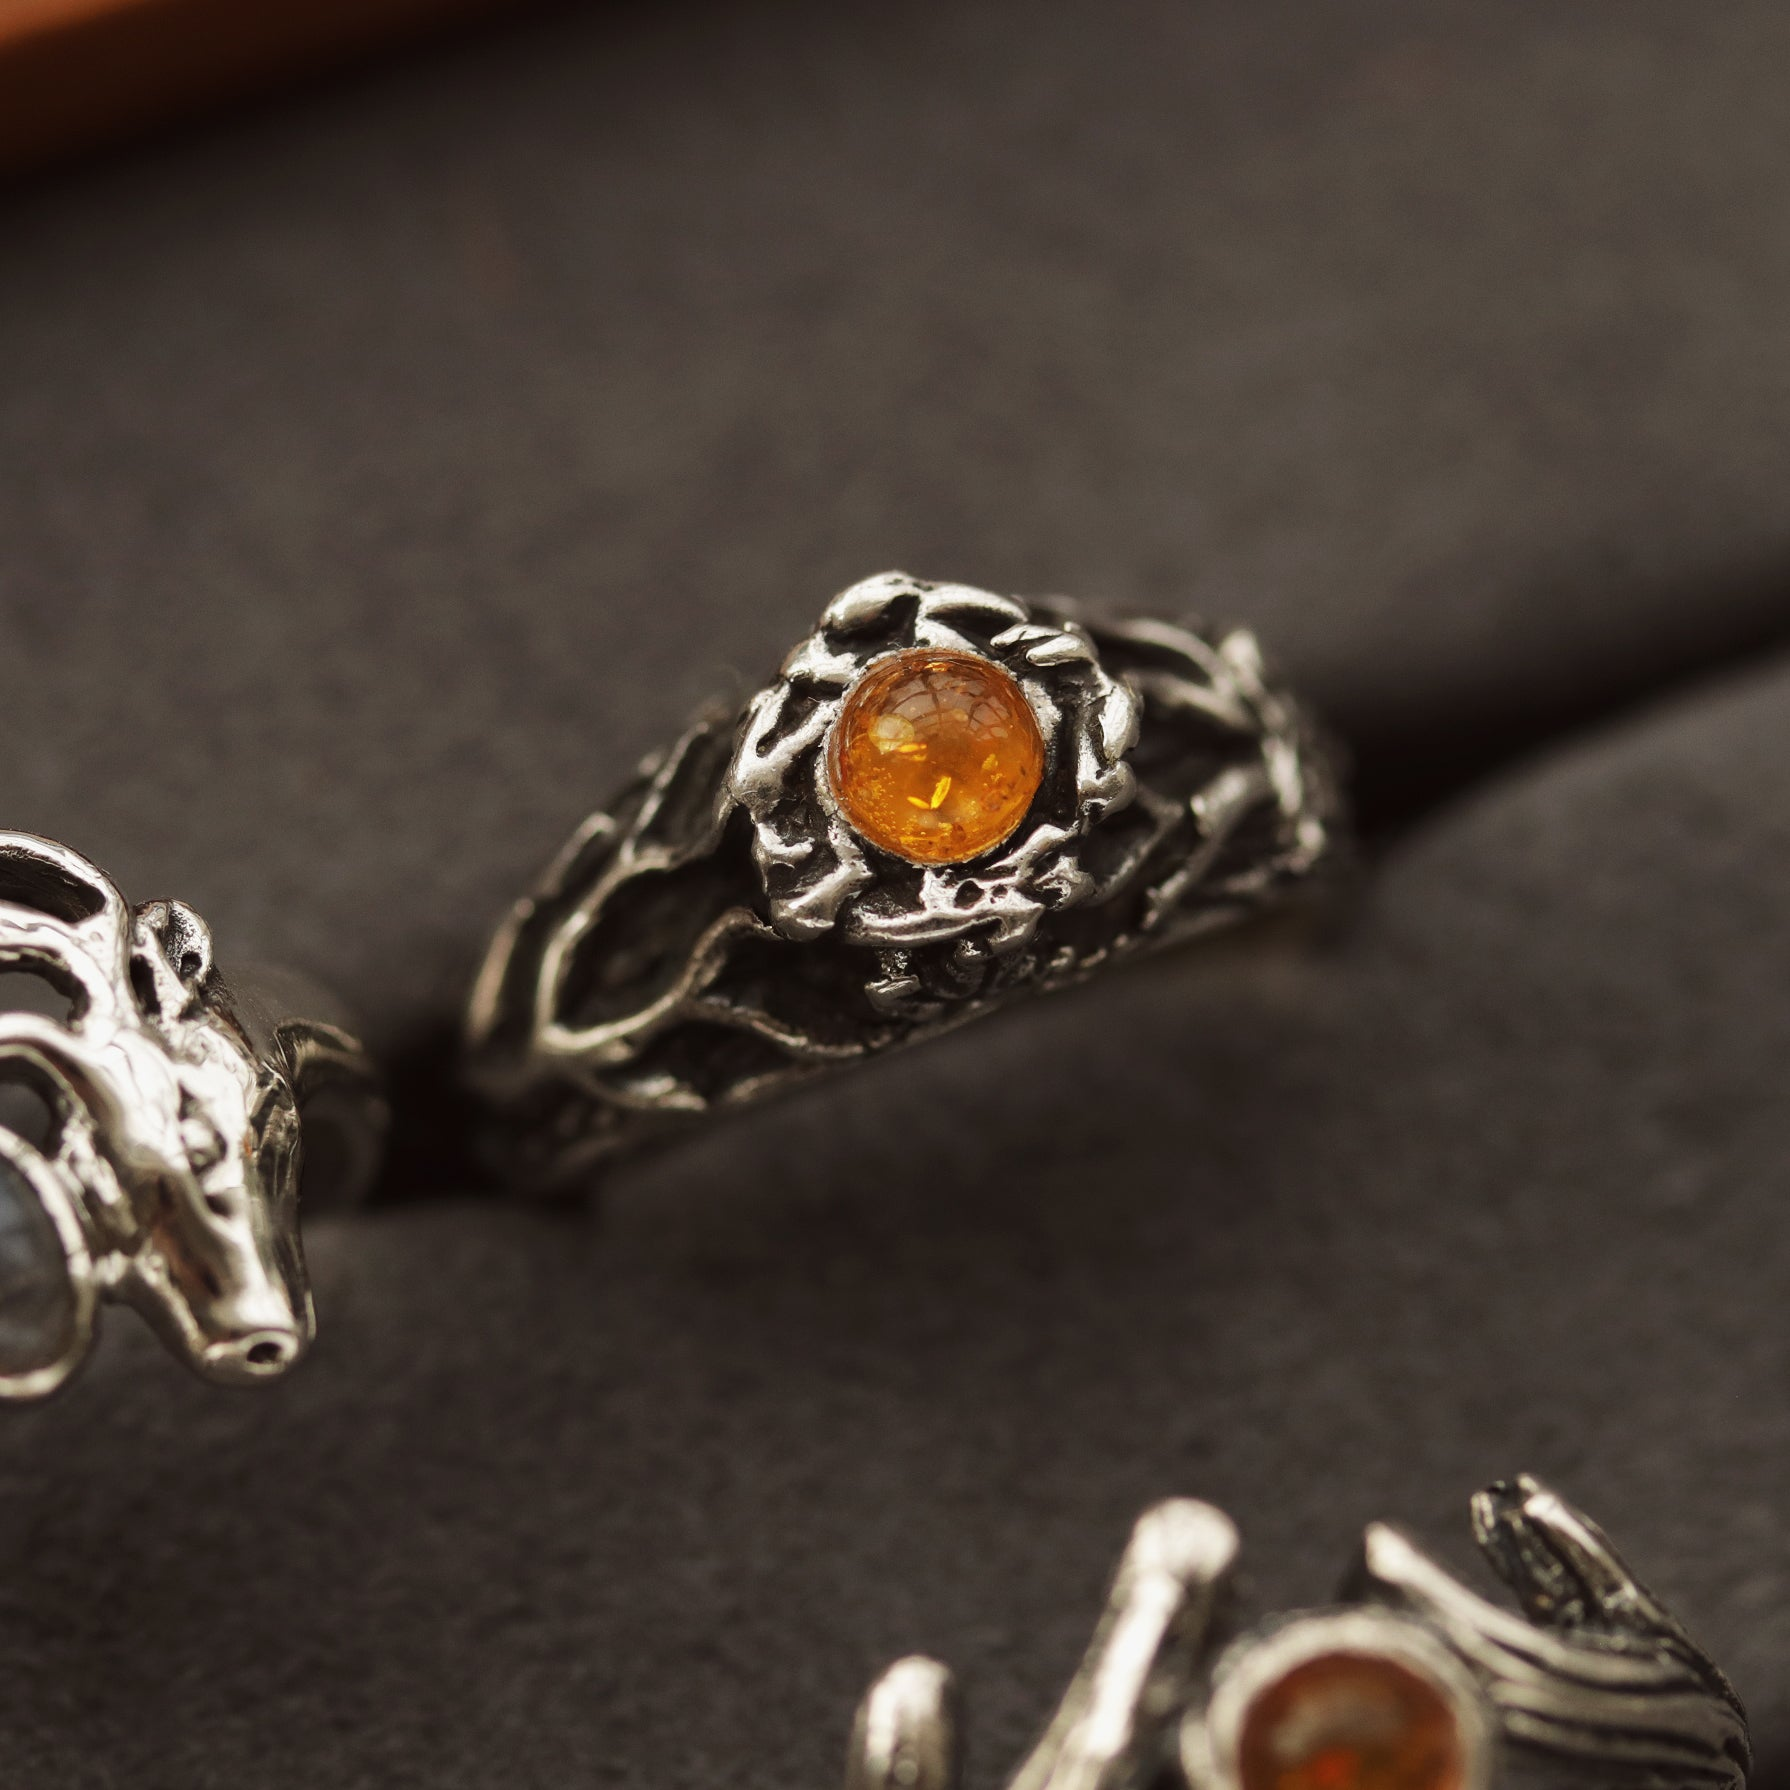 LAST CHANCE - Sisu Ivy & Amber Boho Tree Ring | Talent Scout Winner